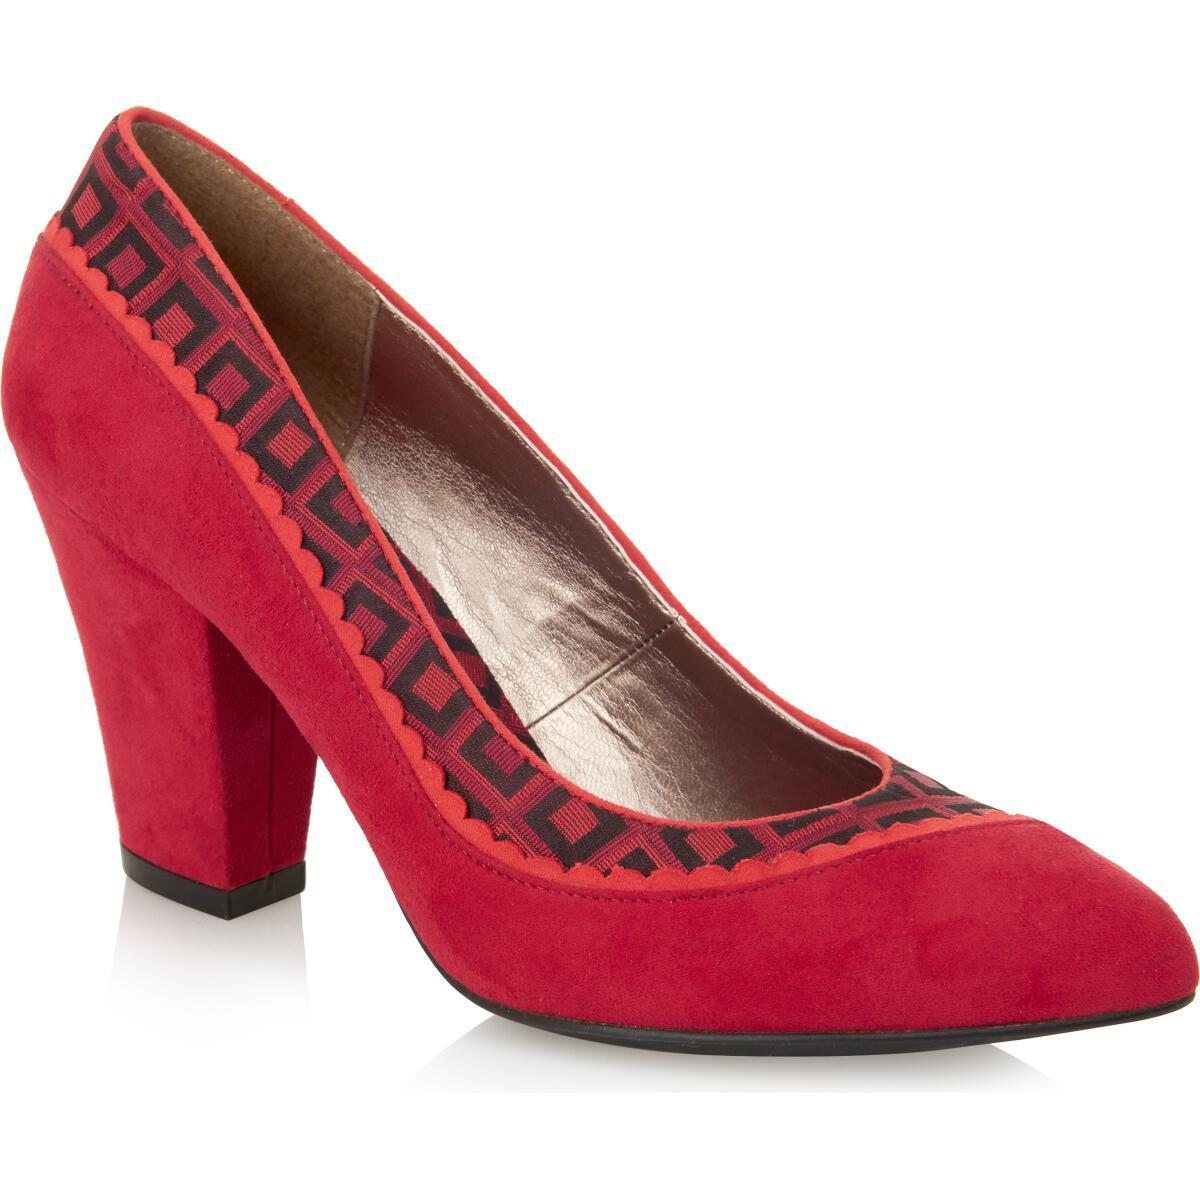 Ladies Ruby Shoo - Elly Red Court shoes - EU 36 - 39